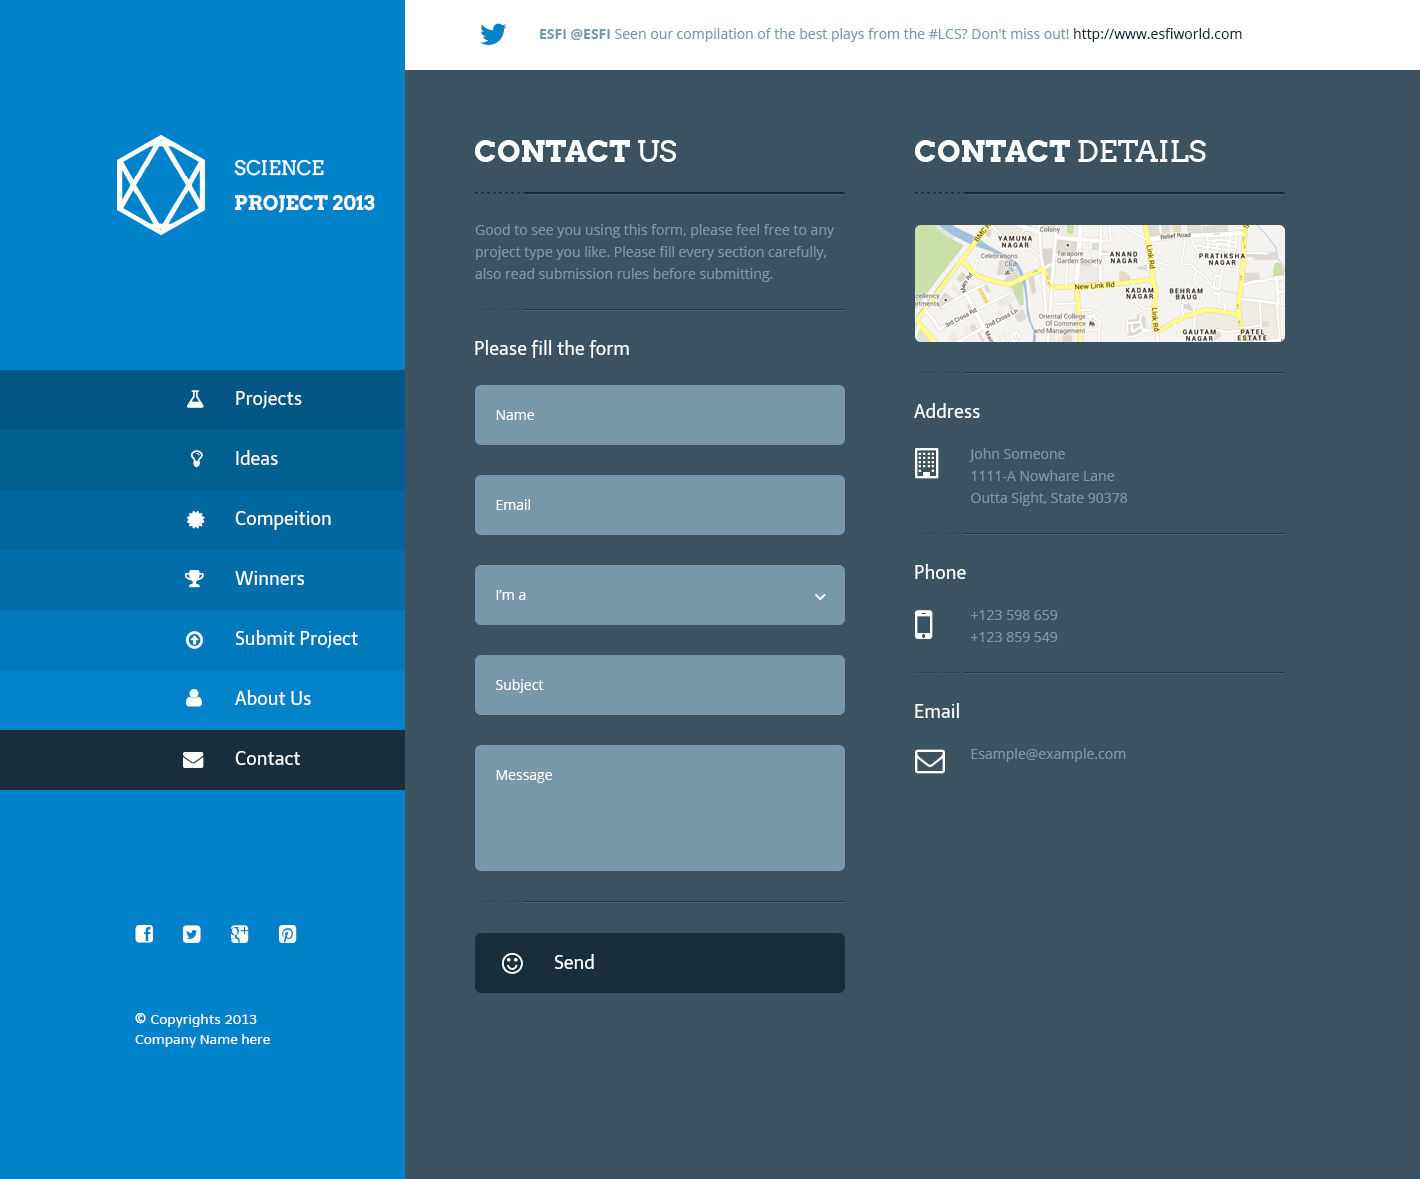 Science project psd template by azyrusmax themeforest for Contact us template free download